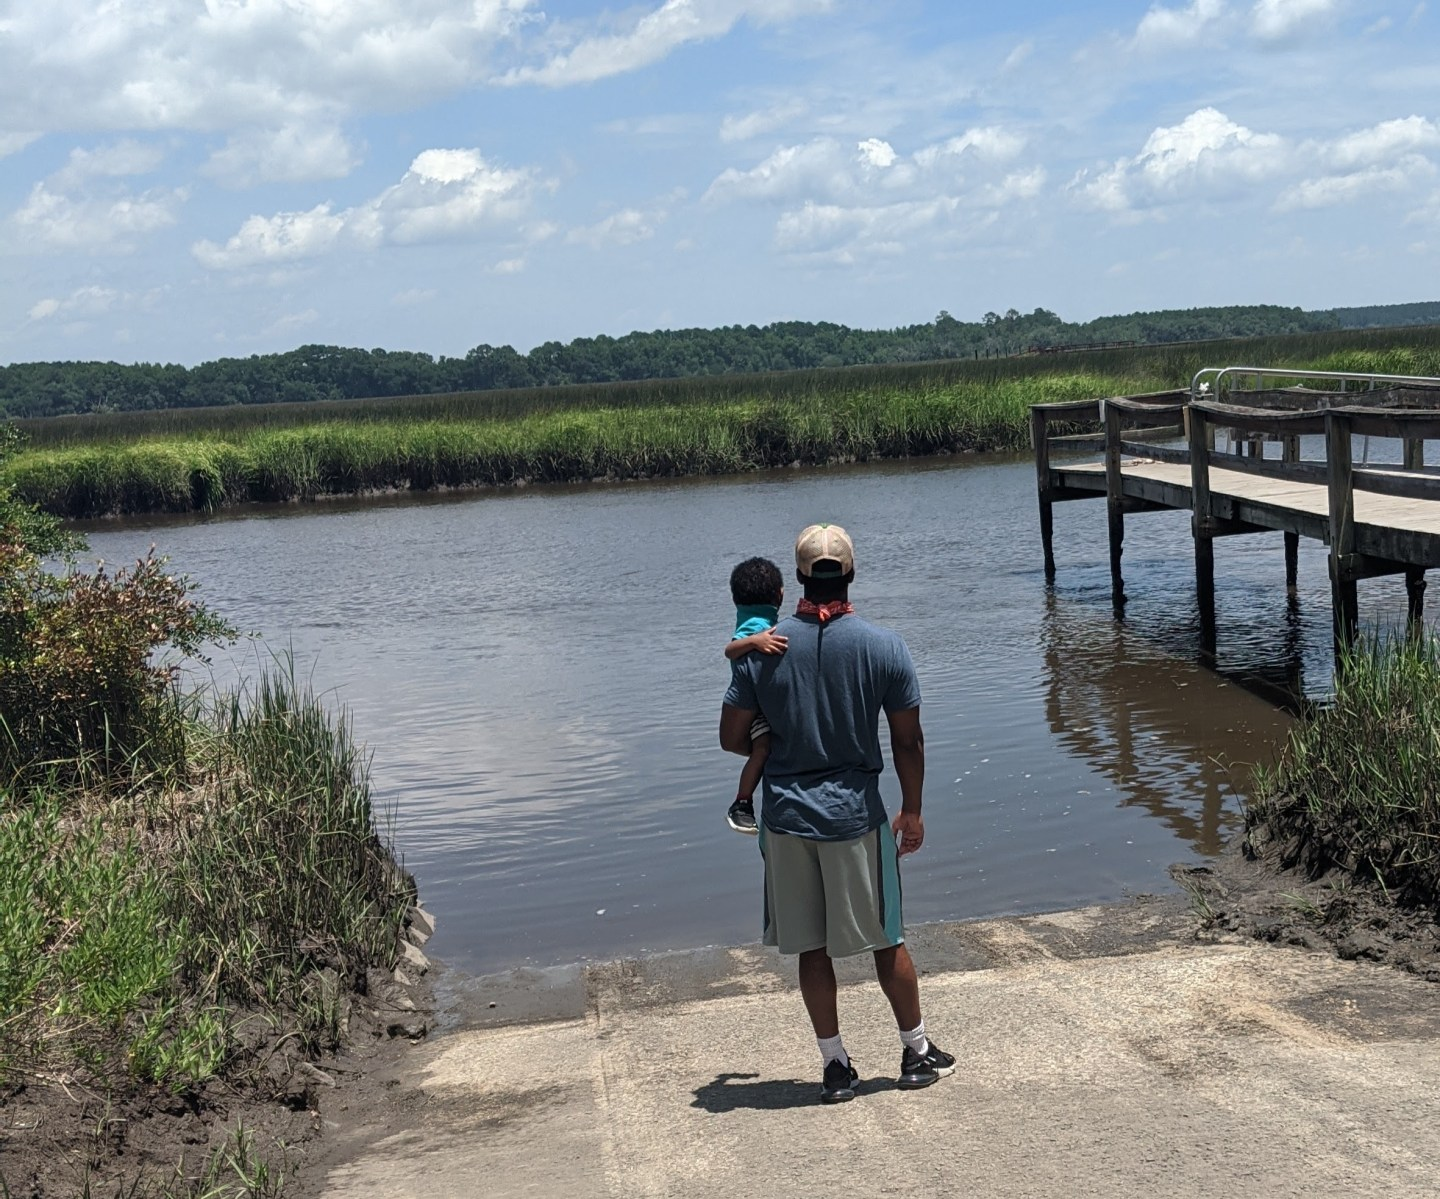 Gullah Geechee Travels: South Carolina Lowcountry Boat Ramps to Enjoy